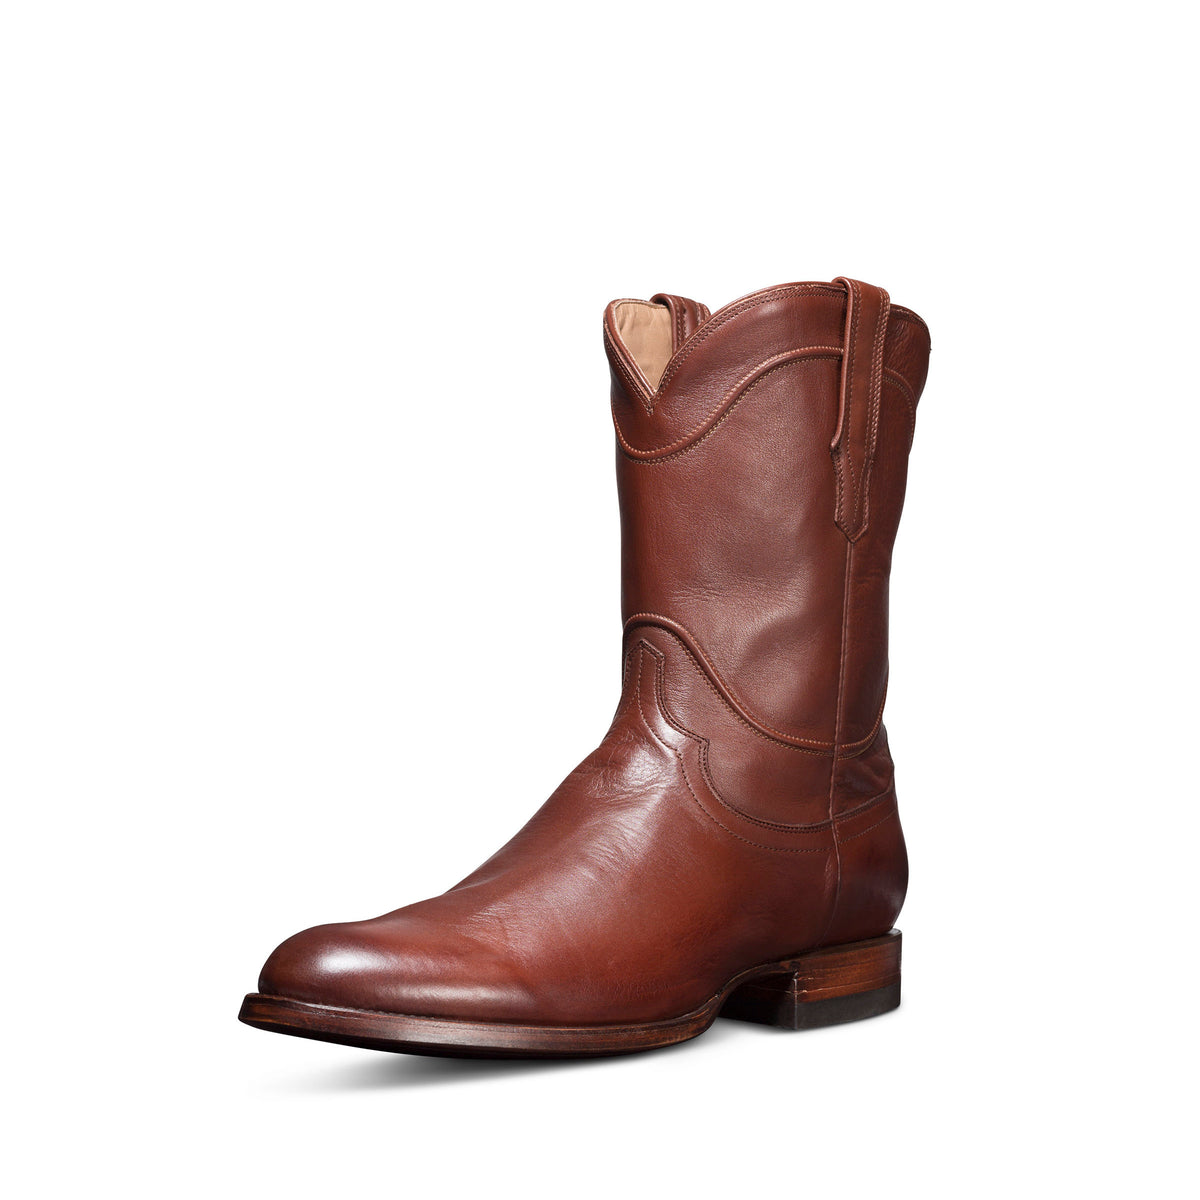 bef5d48afb6 Classic Roper Boots - Handmade Leather Boots For Men